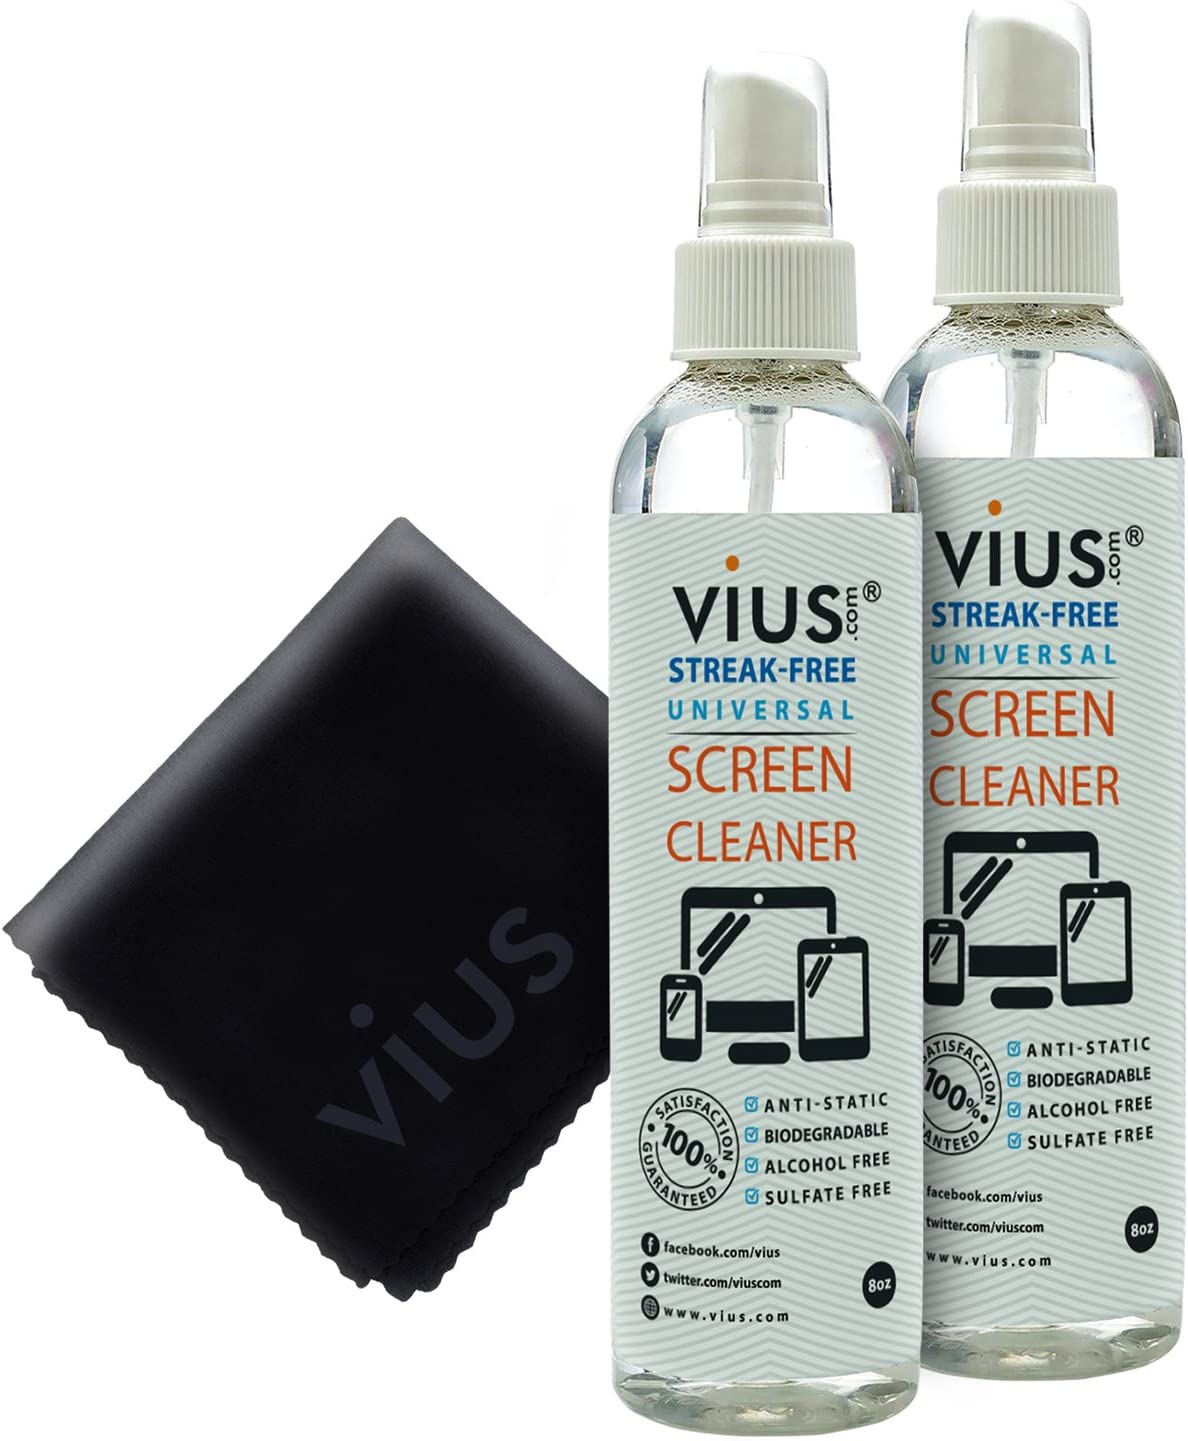 Screen Cleaner – vius Premium Screen Cleaner Spray for LCD LED TVs, Laptops, Tablets, Monitors, Phones, and Other Electronic Screens - Gently Cleans Fingerprints, Dust, Oil (8oz 2-Pack)